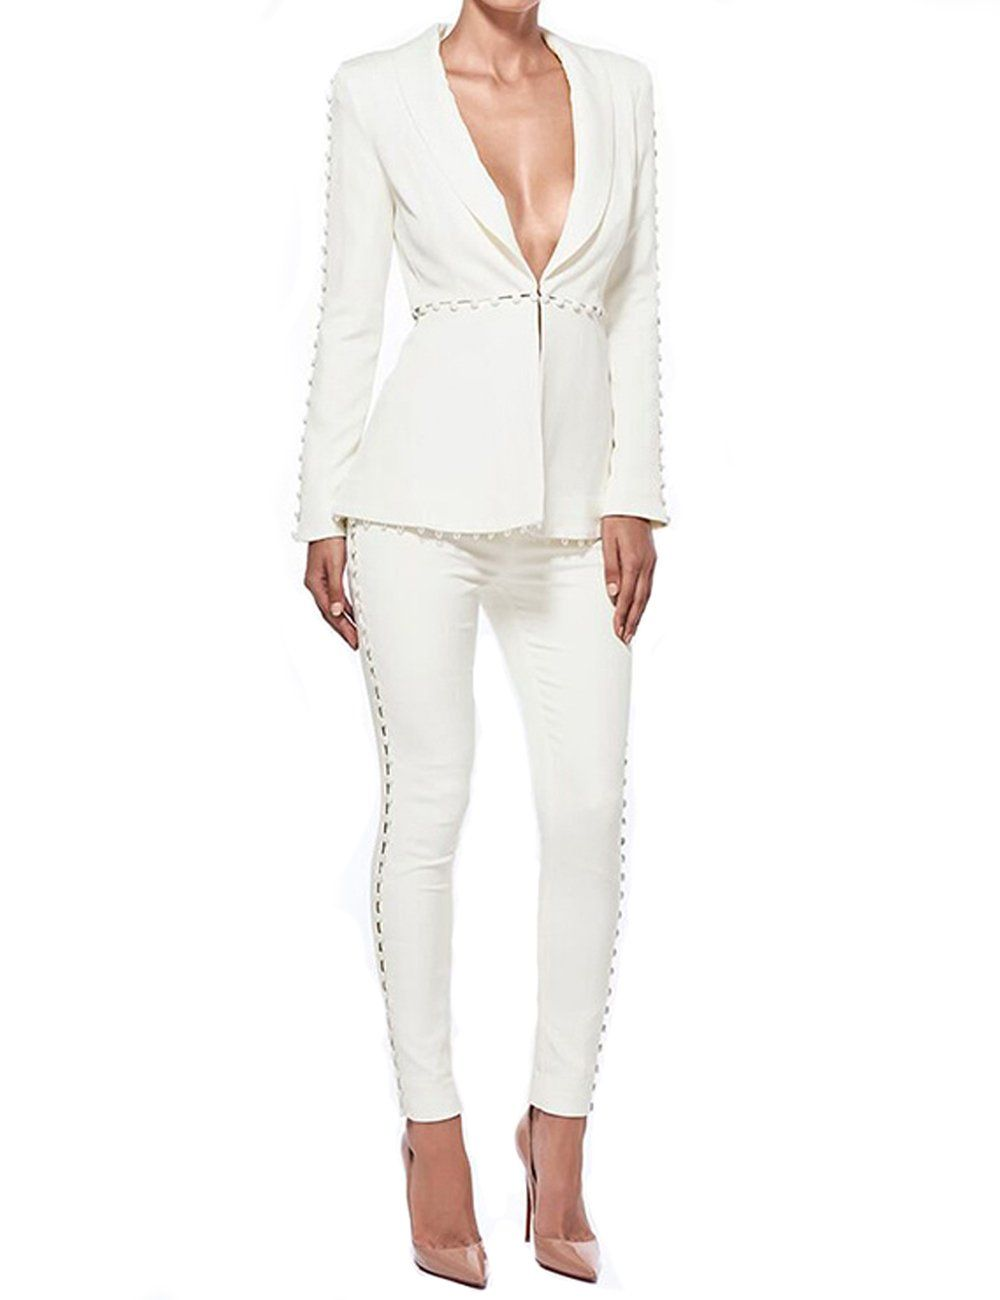 acadada2cfb2 UONBOX Womens Cut Out 2 Pieces Slim Fit Blazer Jacket and Pants Suit Set S  White